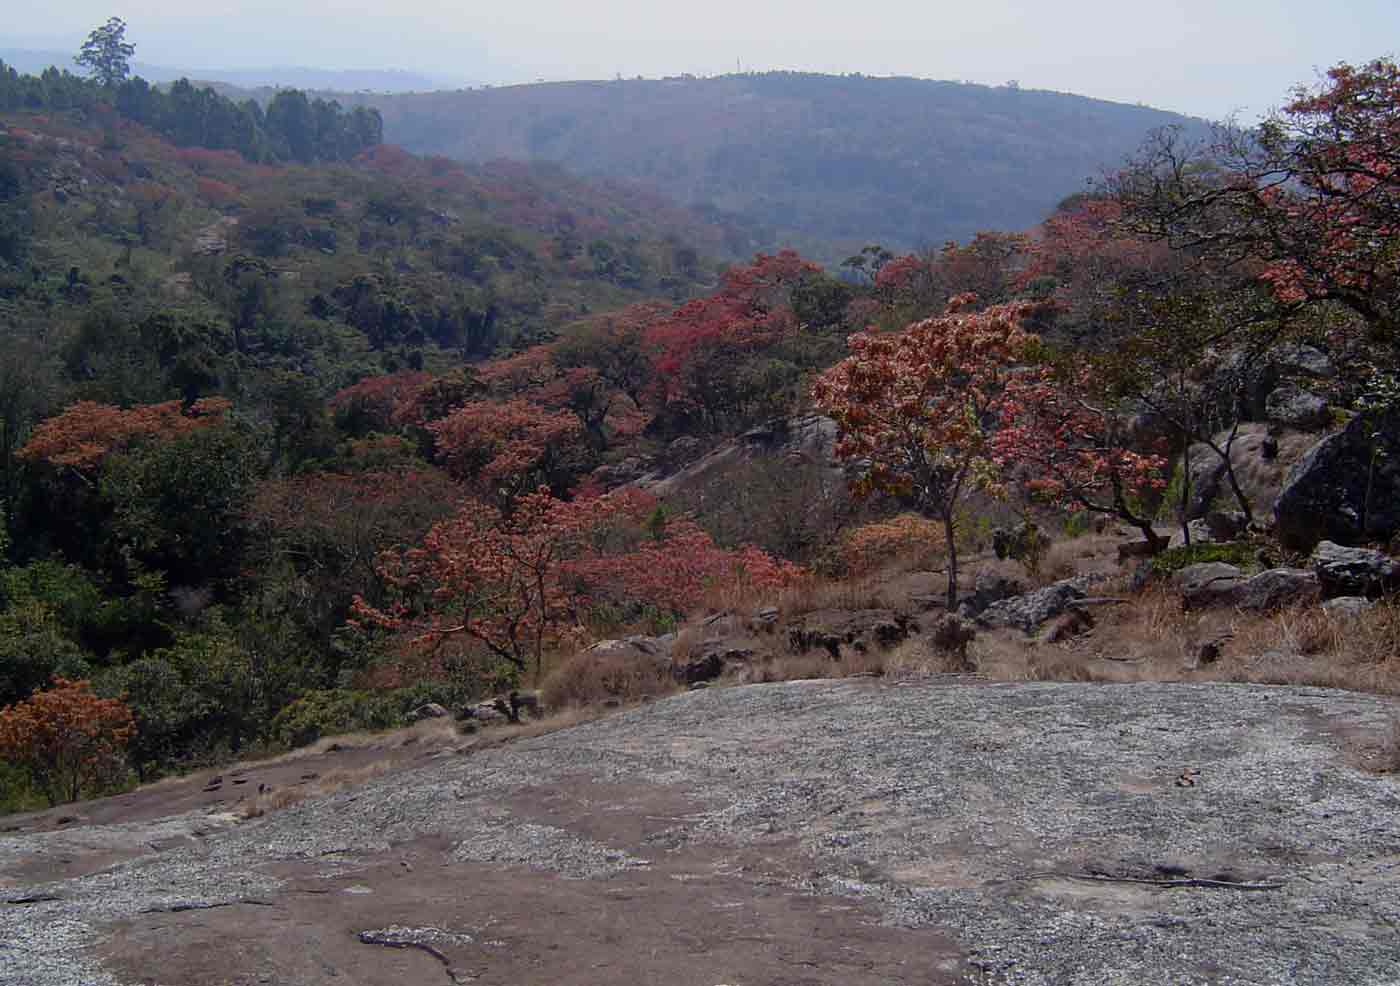 """<a href=""""species.php?species_id=126660"""">Brachystegia spiciformis</a> with evergreen forest in the ravines"""